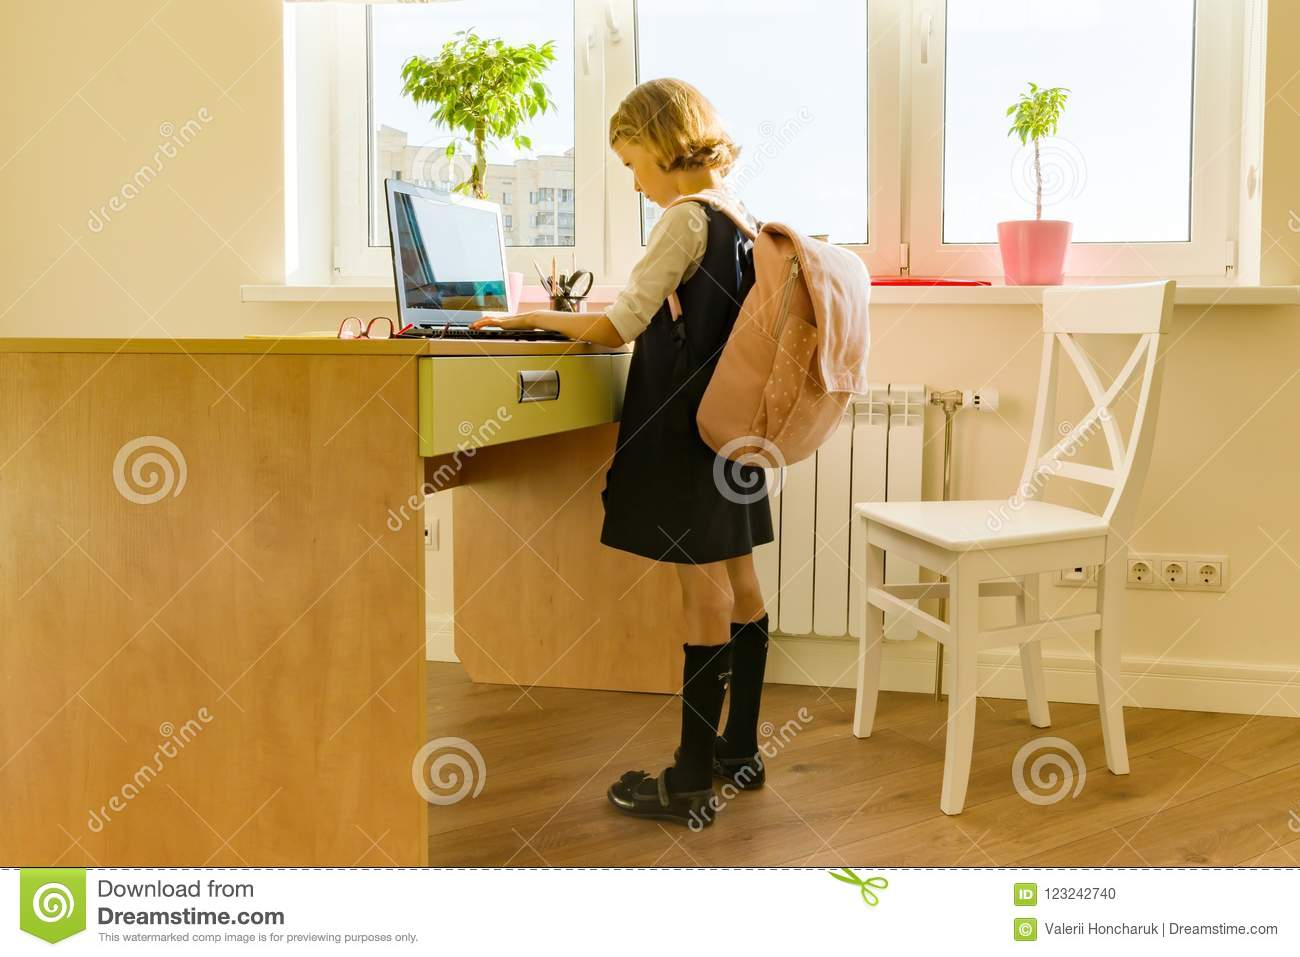 Little student girl of 8 years old in school uniform with a backpack uses laptop. School, education, knowledge and children.